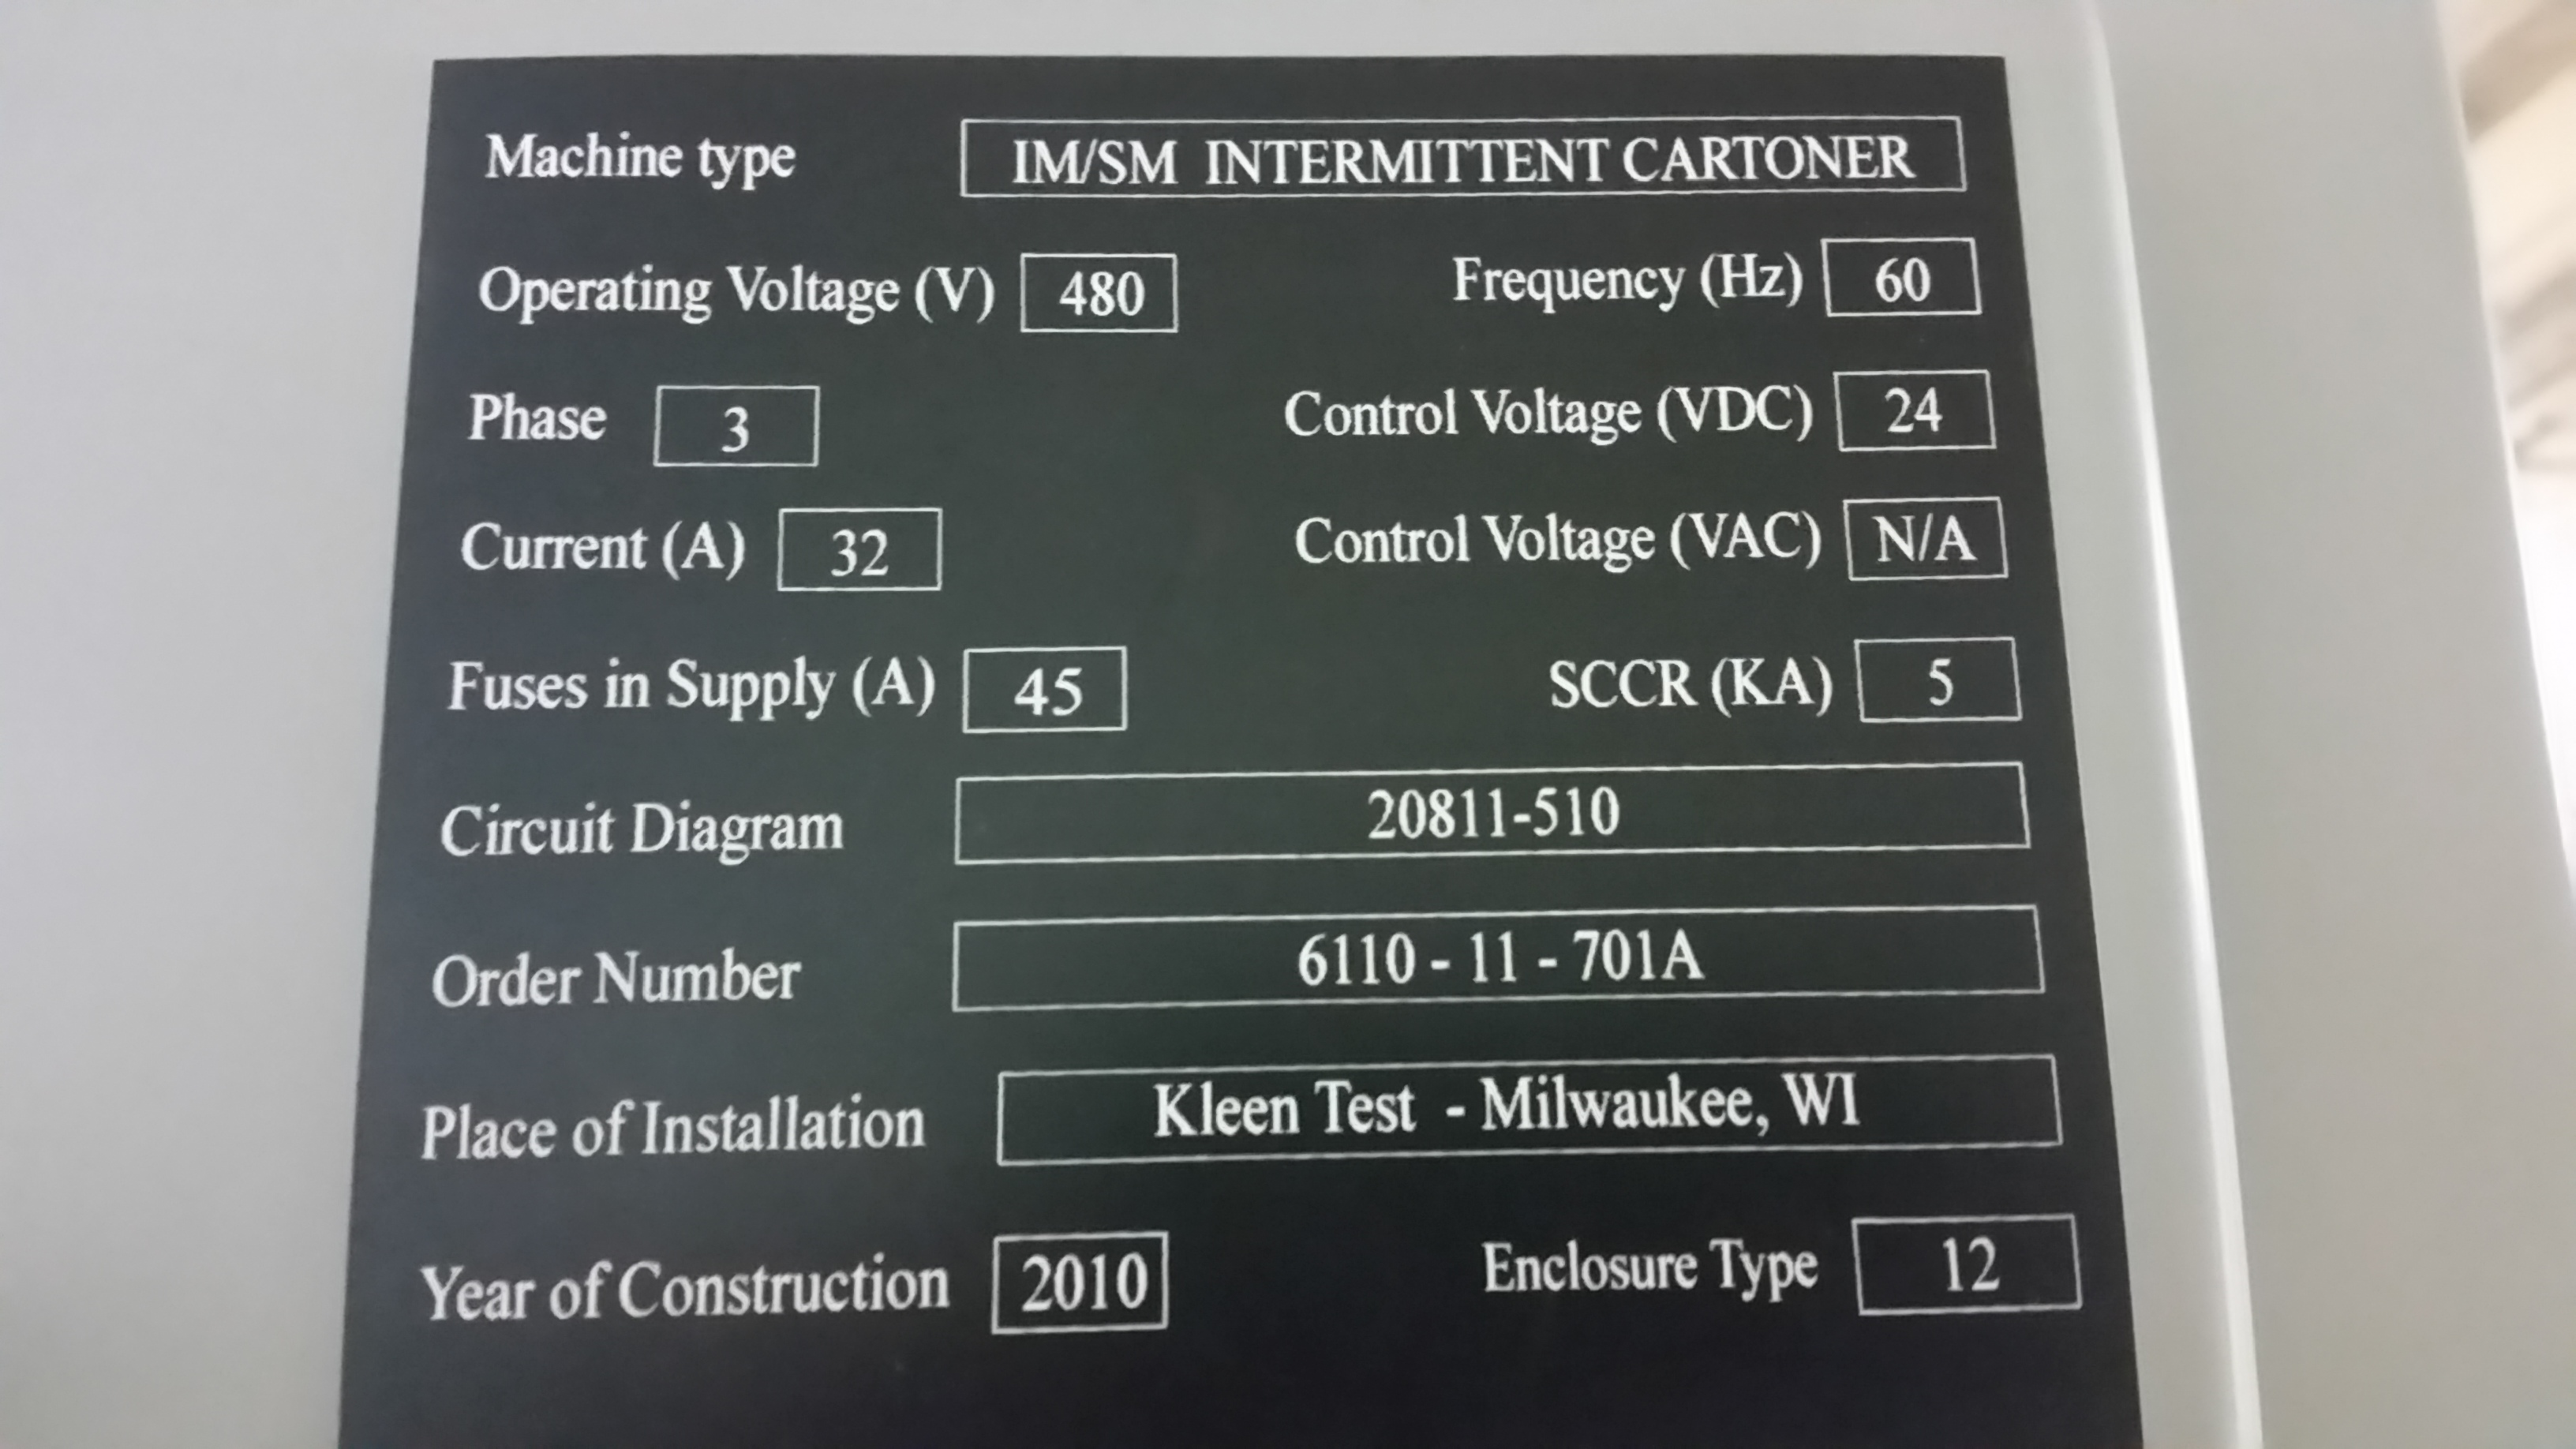 Lot 5 - KHS IM/SM INTERMITTENT CARTONER YEAR 2010 SN: 20812-510 with Mclean M520446G002,Compact Indoor Air